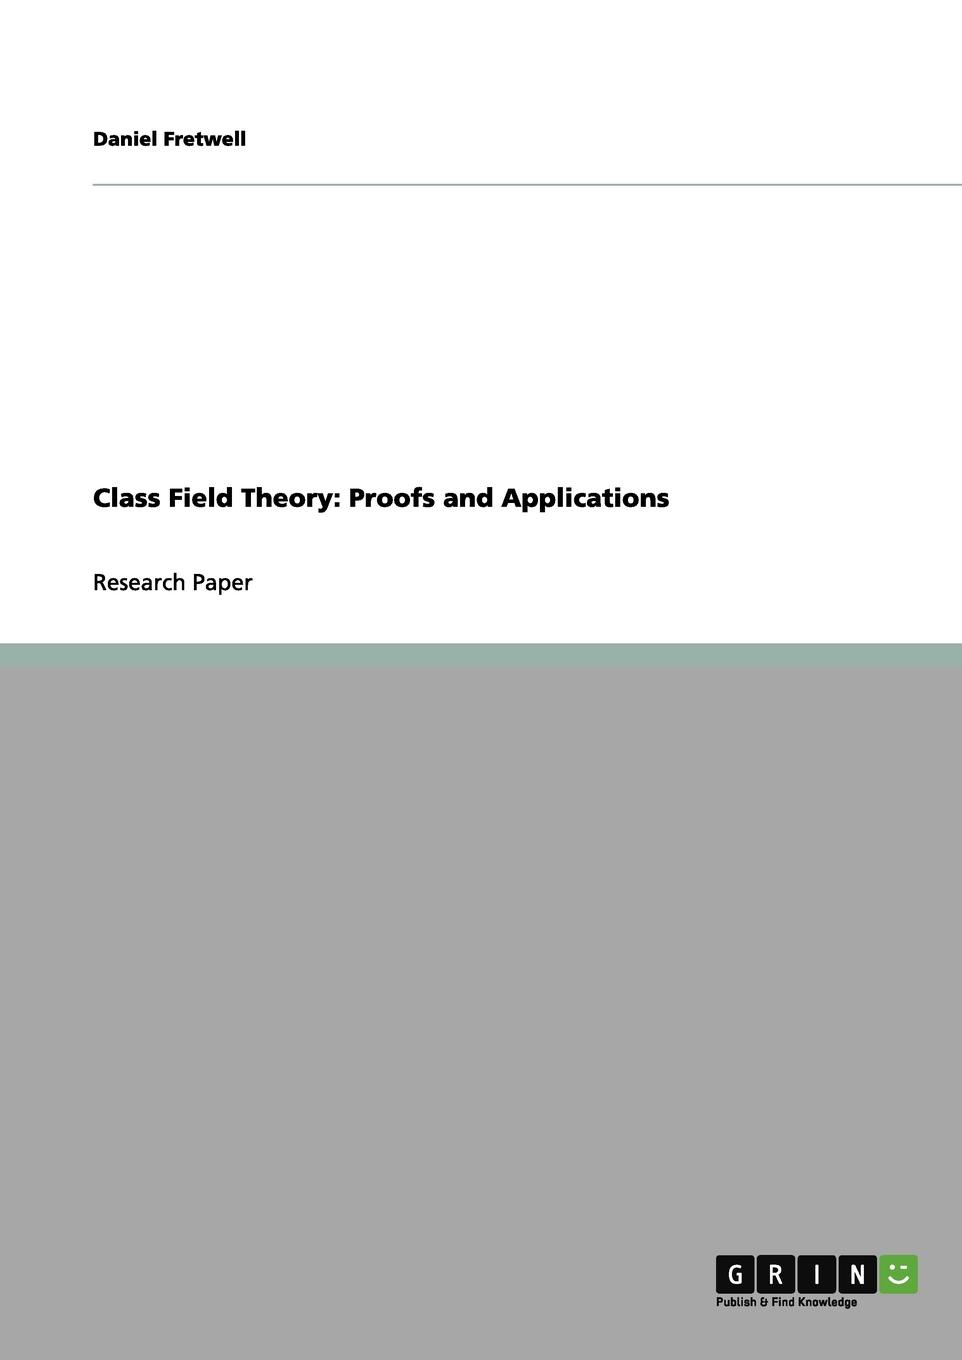 Daniel Fretwell Class Field Theory. Proofs and Applications david cox a primes of the form x2 ny2 fermat class field theory and complex multiplication